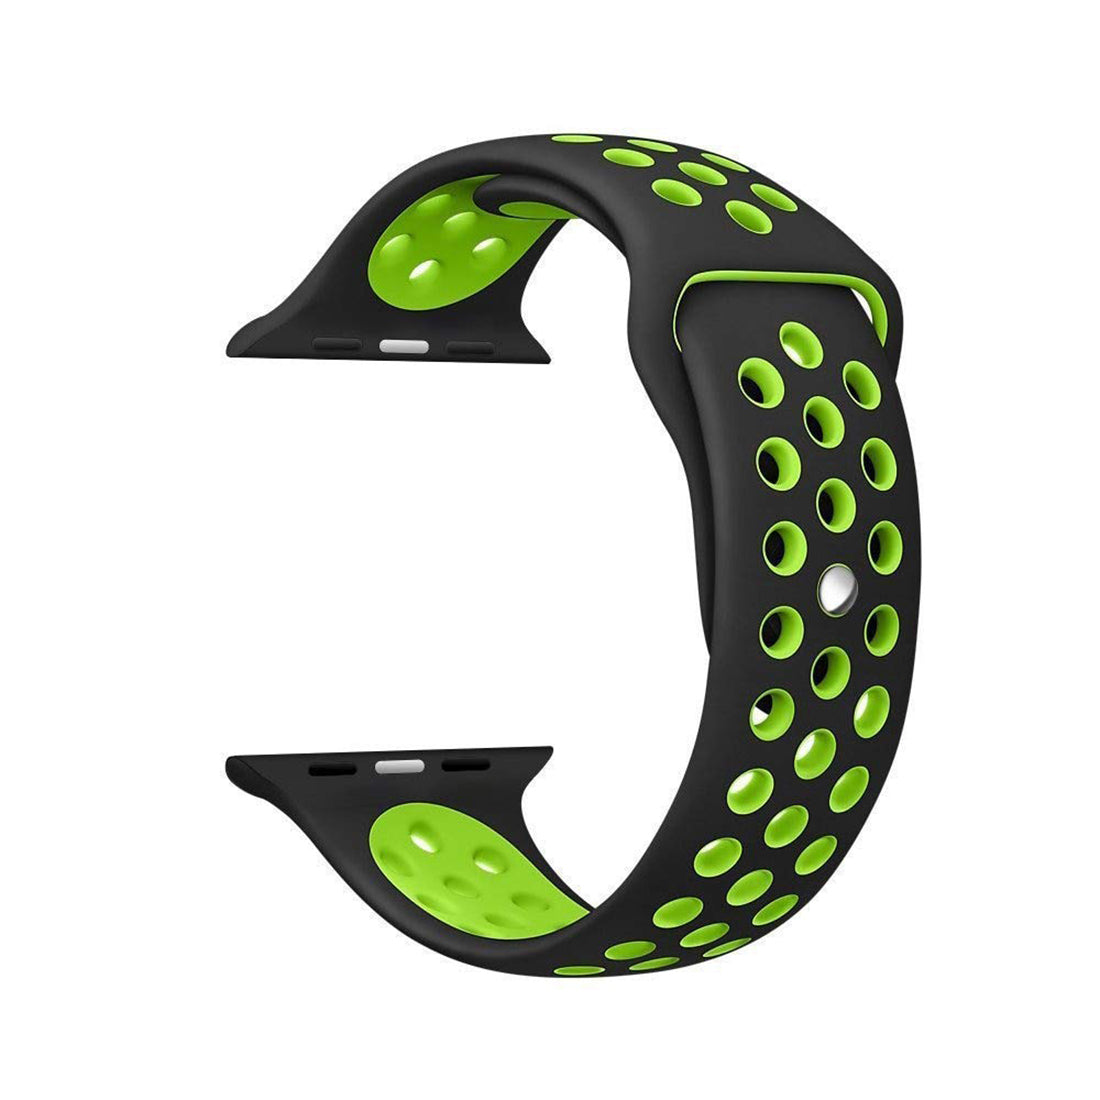 Silicone Sports Watch Strap for Apple Watch Series 5/4/3/2/1 (Black & Green Air Hole)